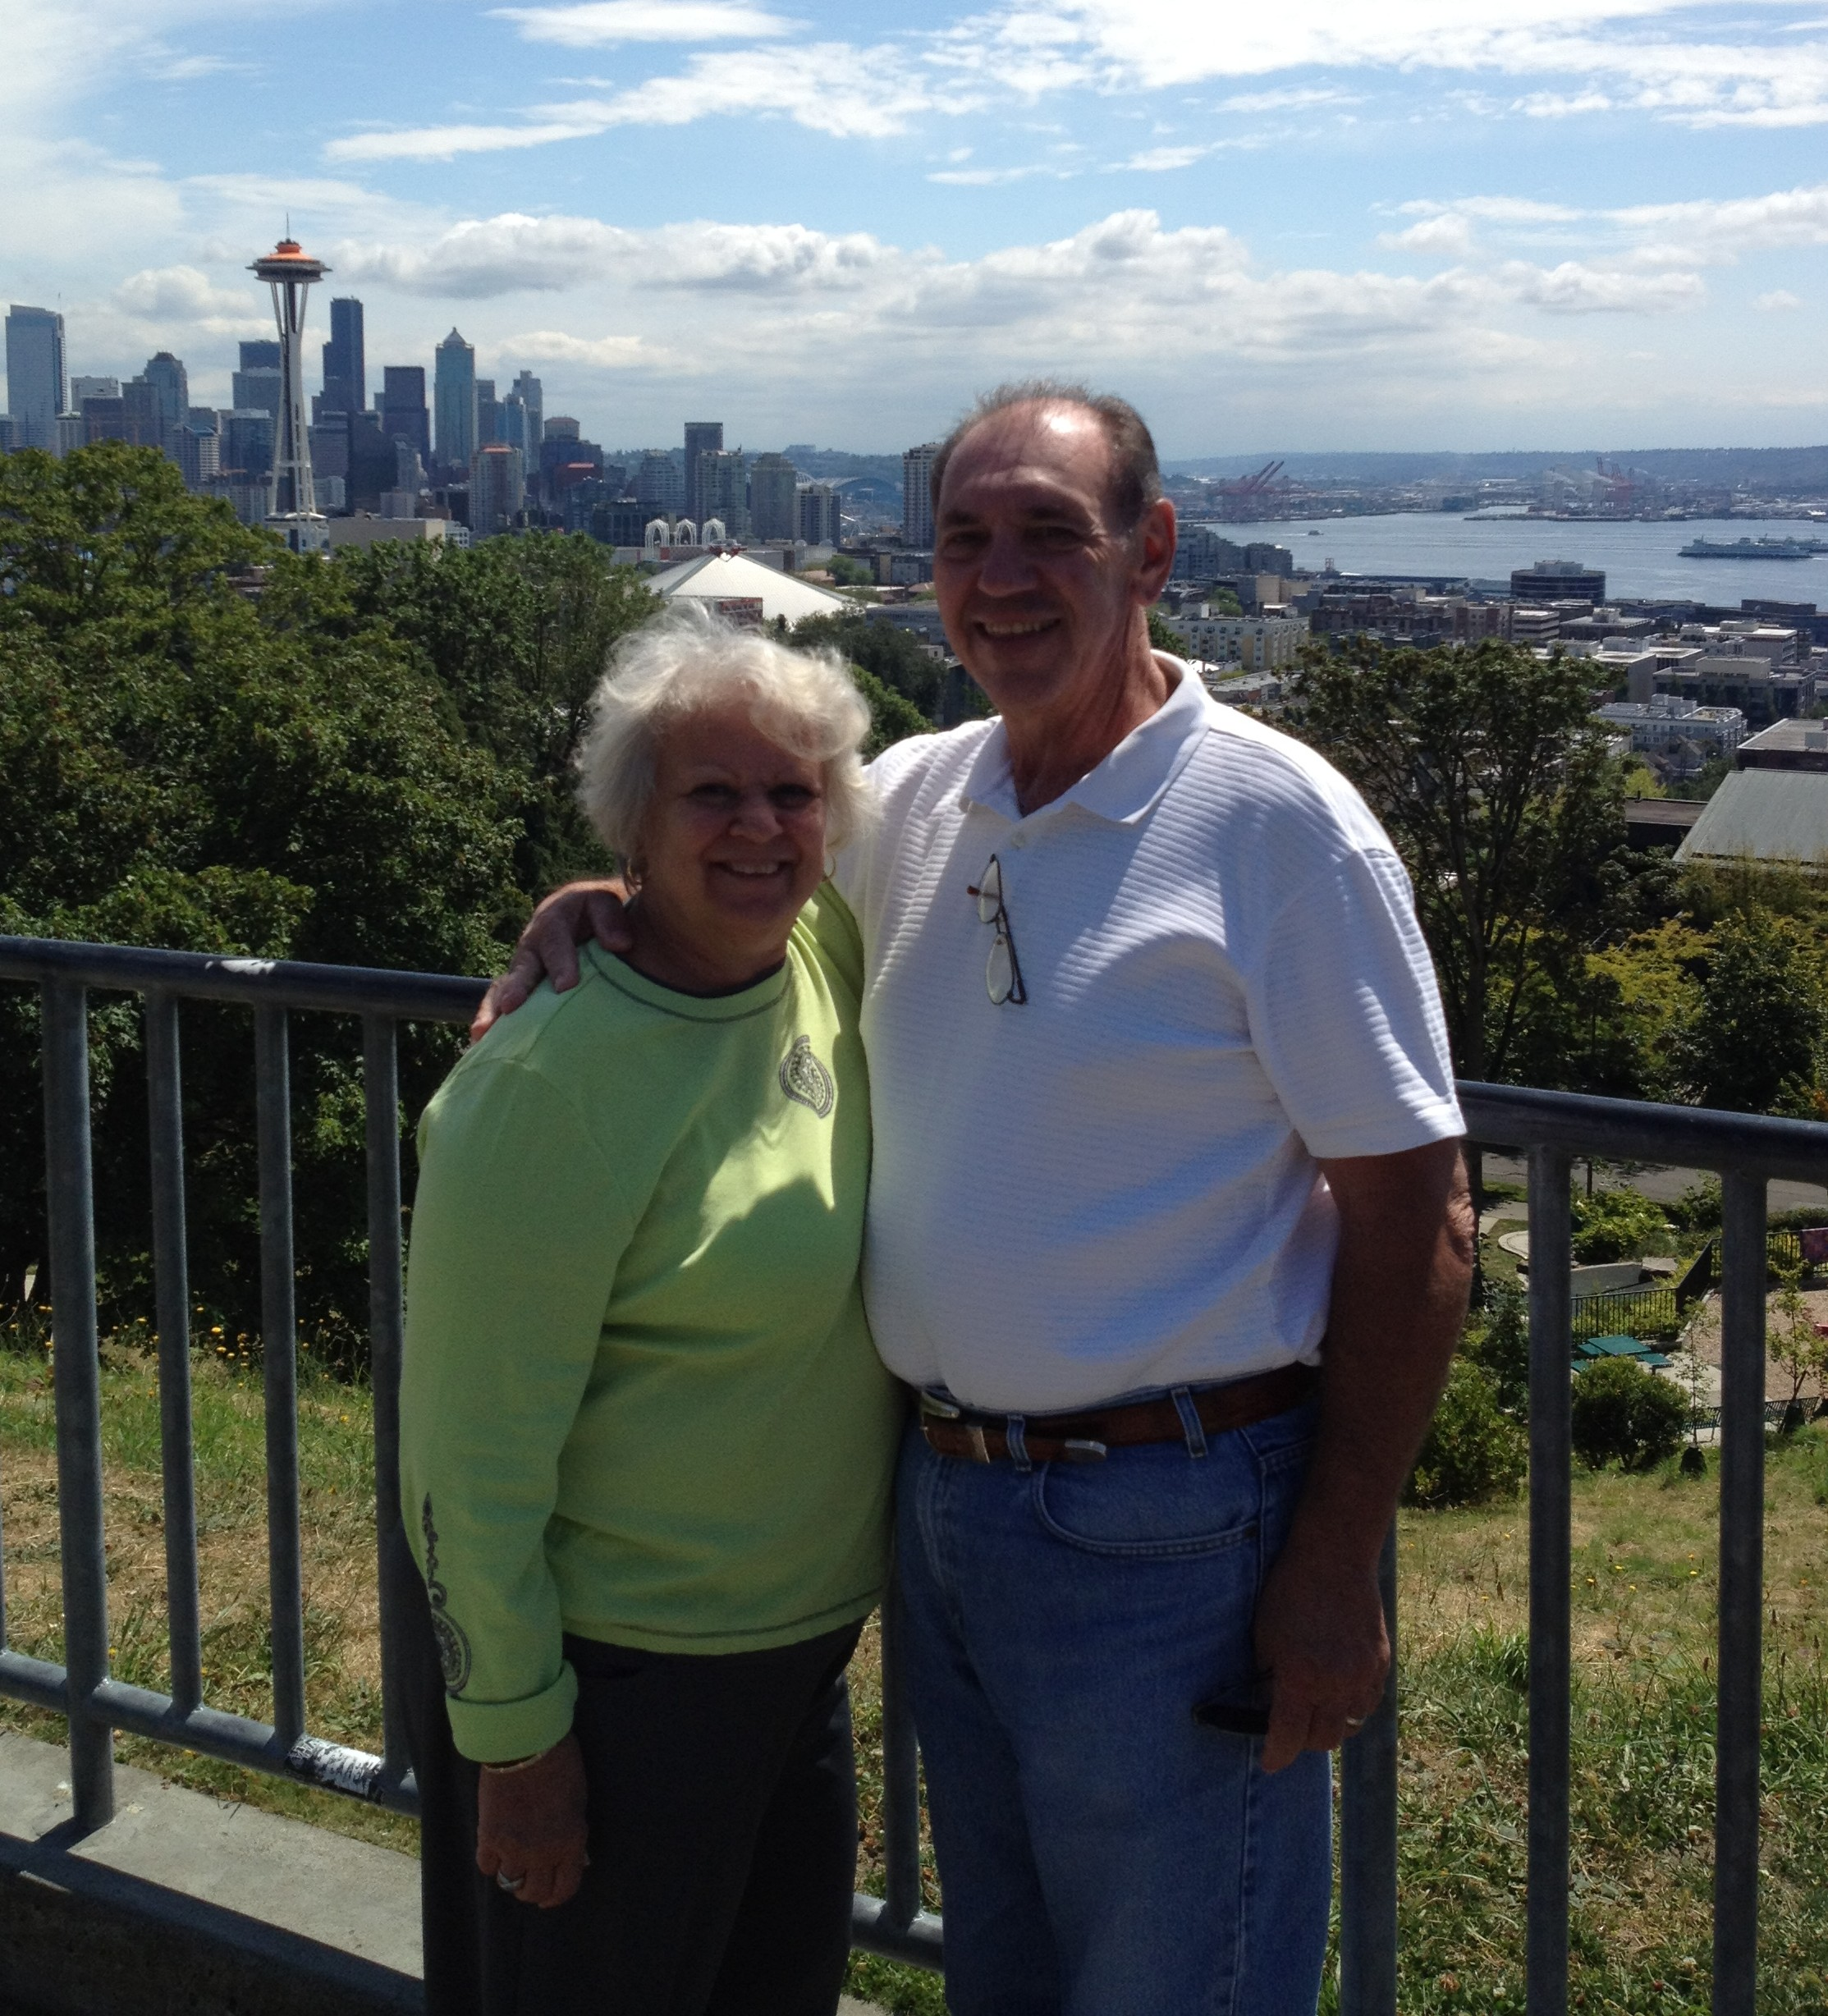 My mom and dad, on their 2012 Seattle visit.